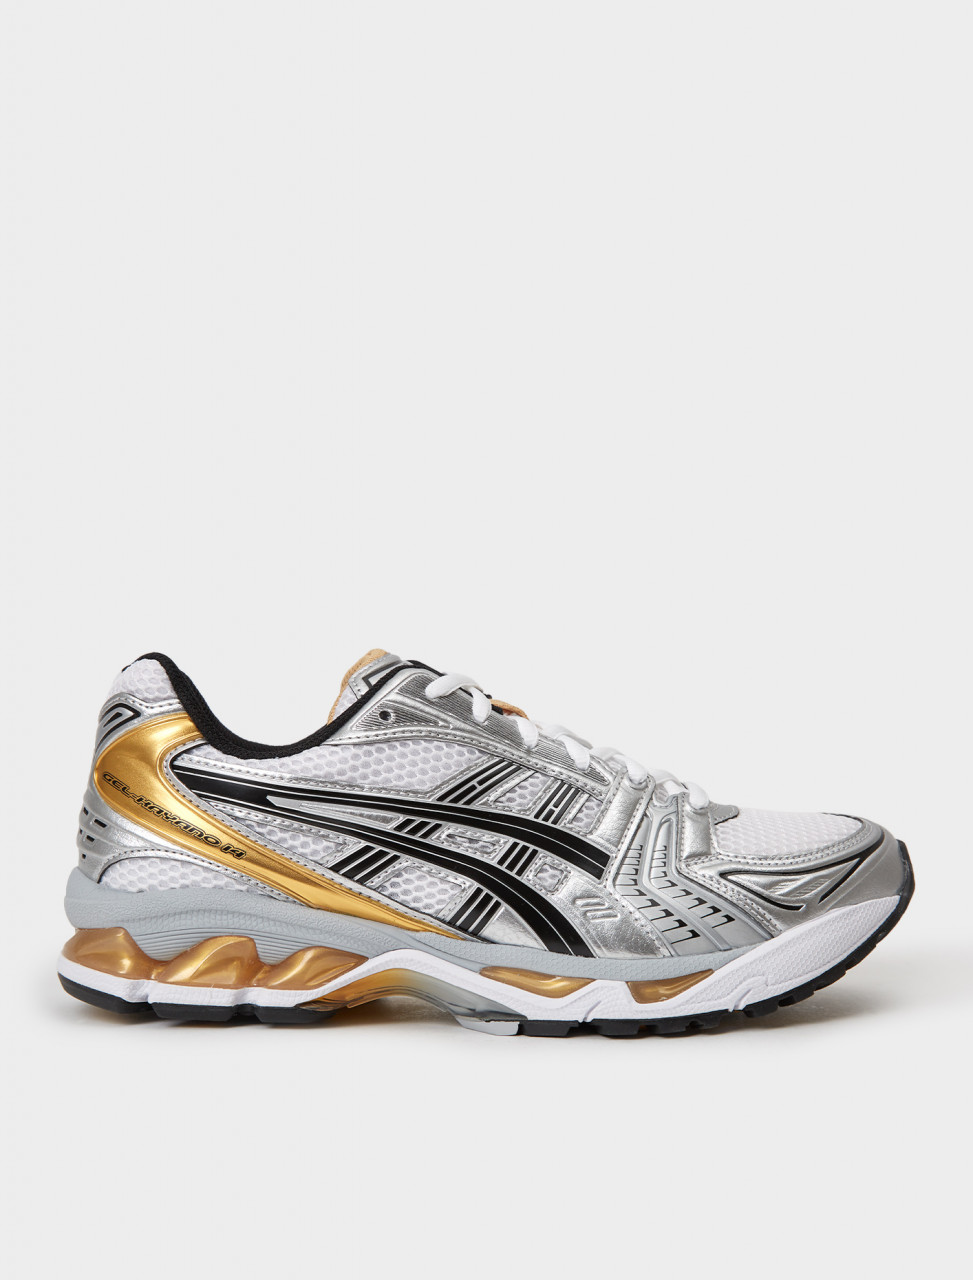 1201A019-102 ASICS GEL KAYANO WHITE PURE GOLD